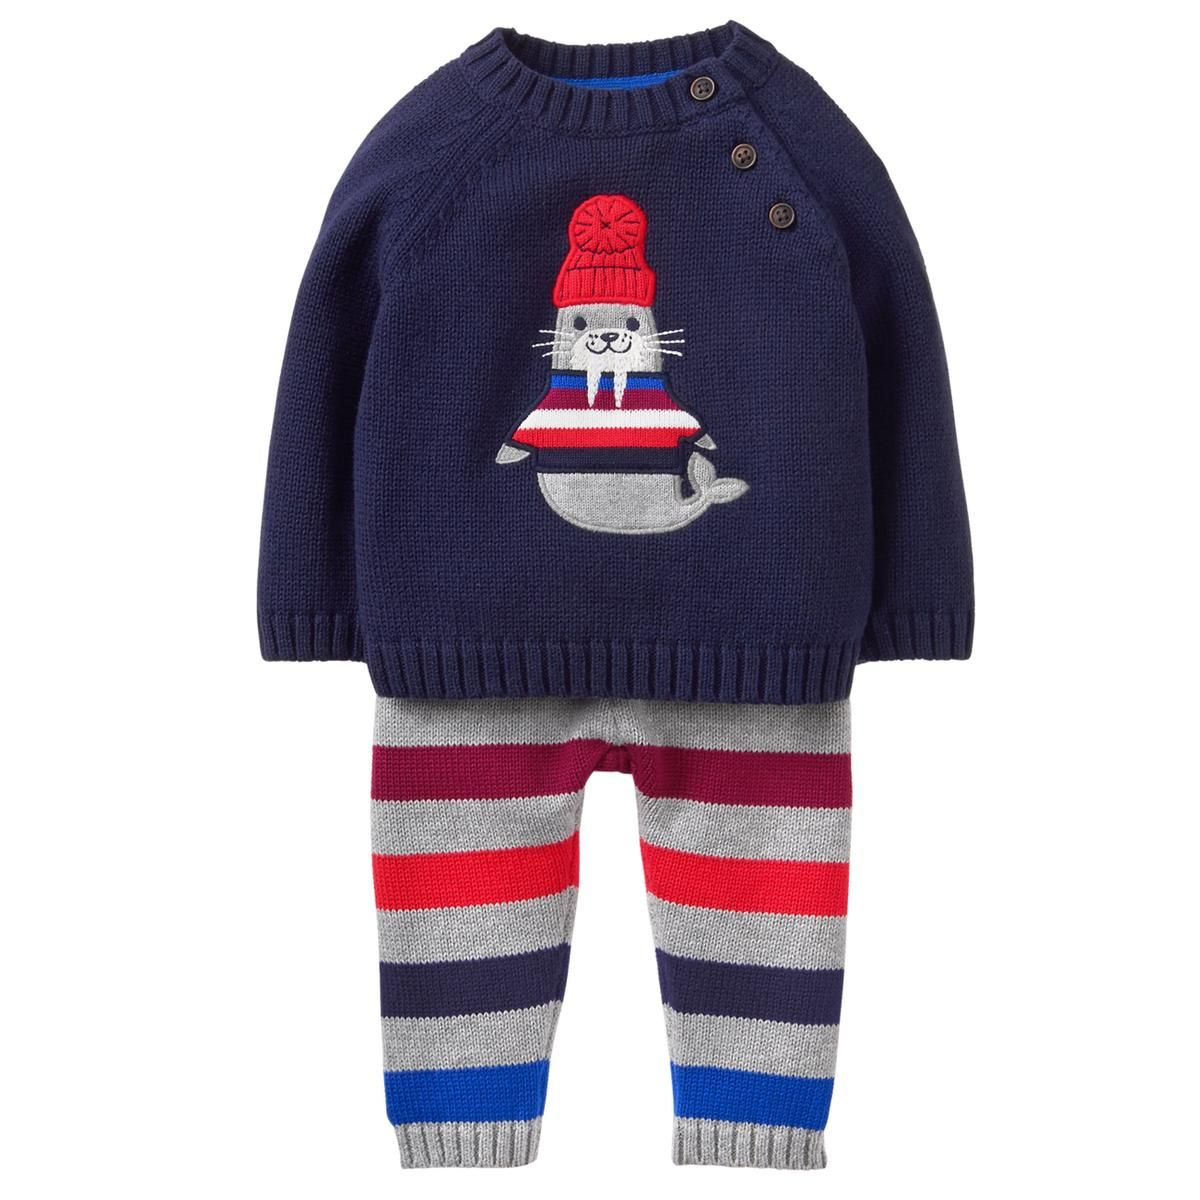 Baby Gym Navy Walrus Sweater Set by Gymboree | Boys clothing ...